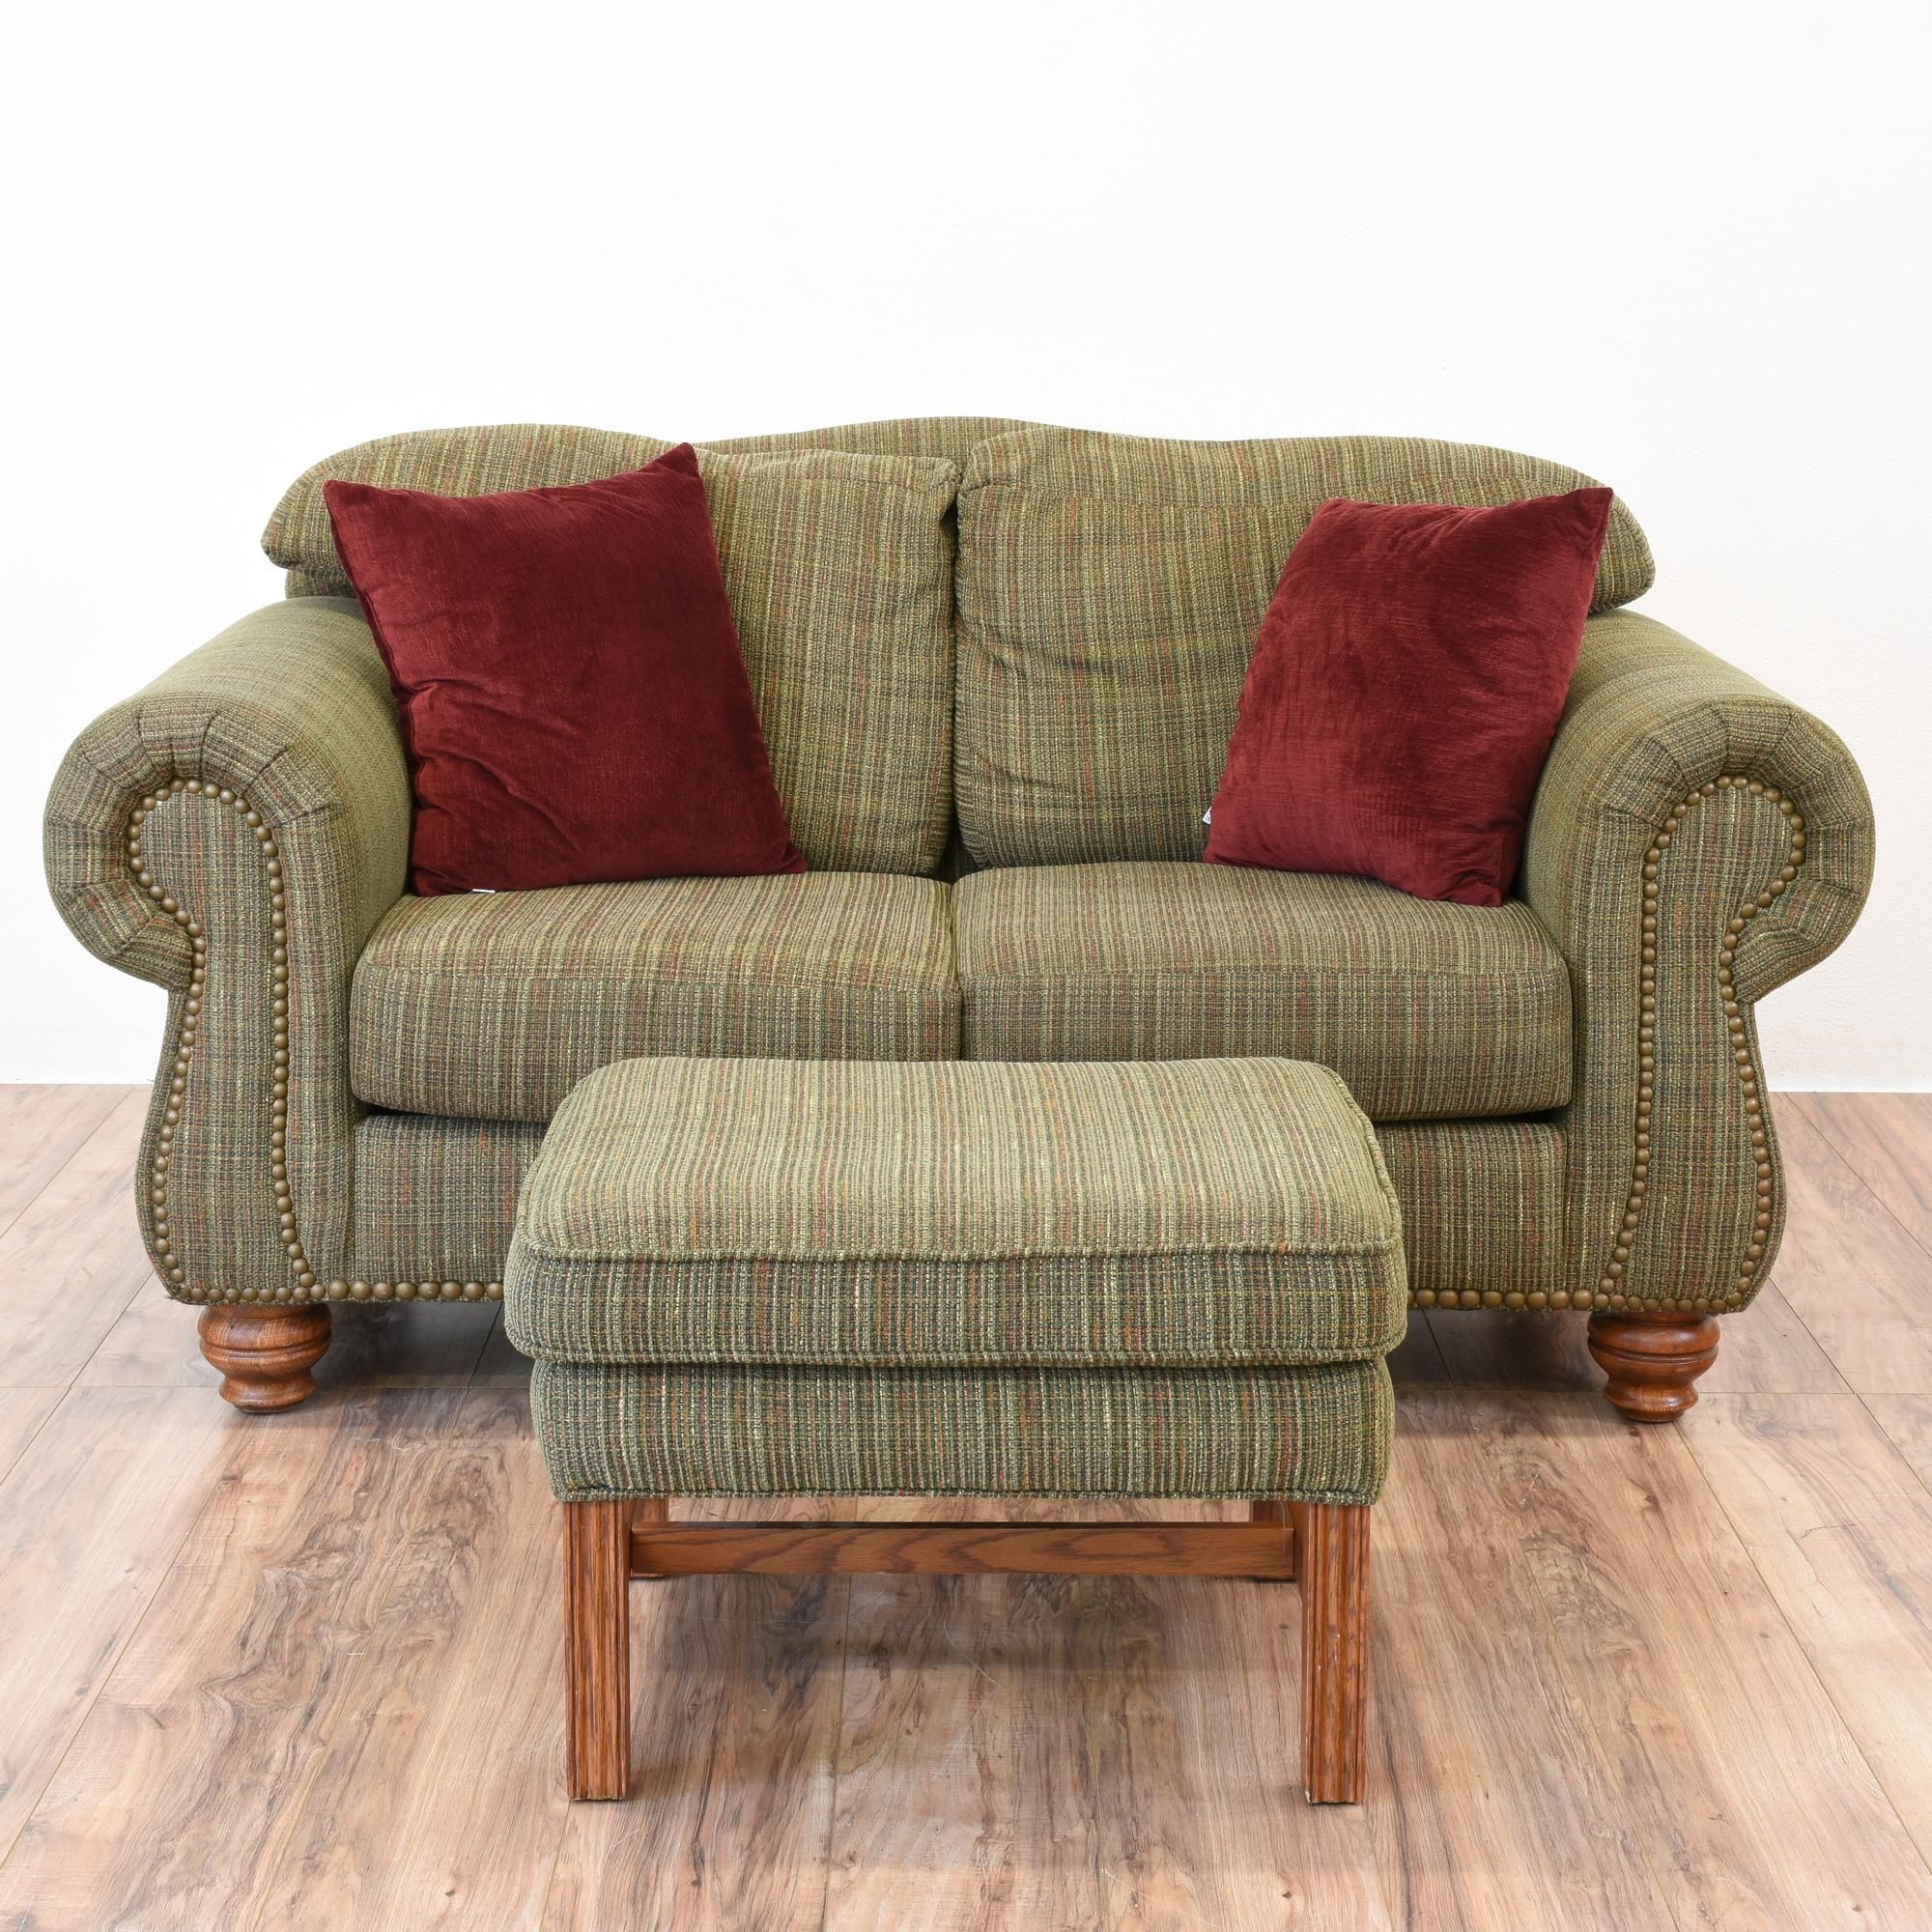 sectionals sectional under furniture elm sofas loveseats loveseat west used khaki lounge